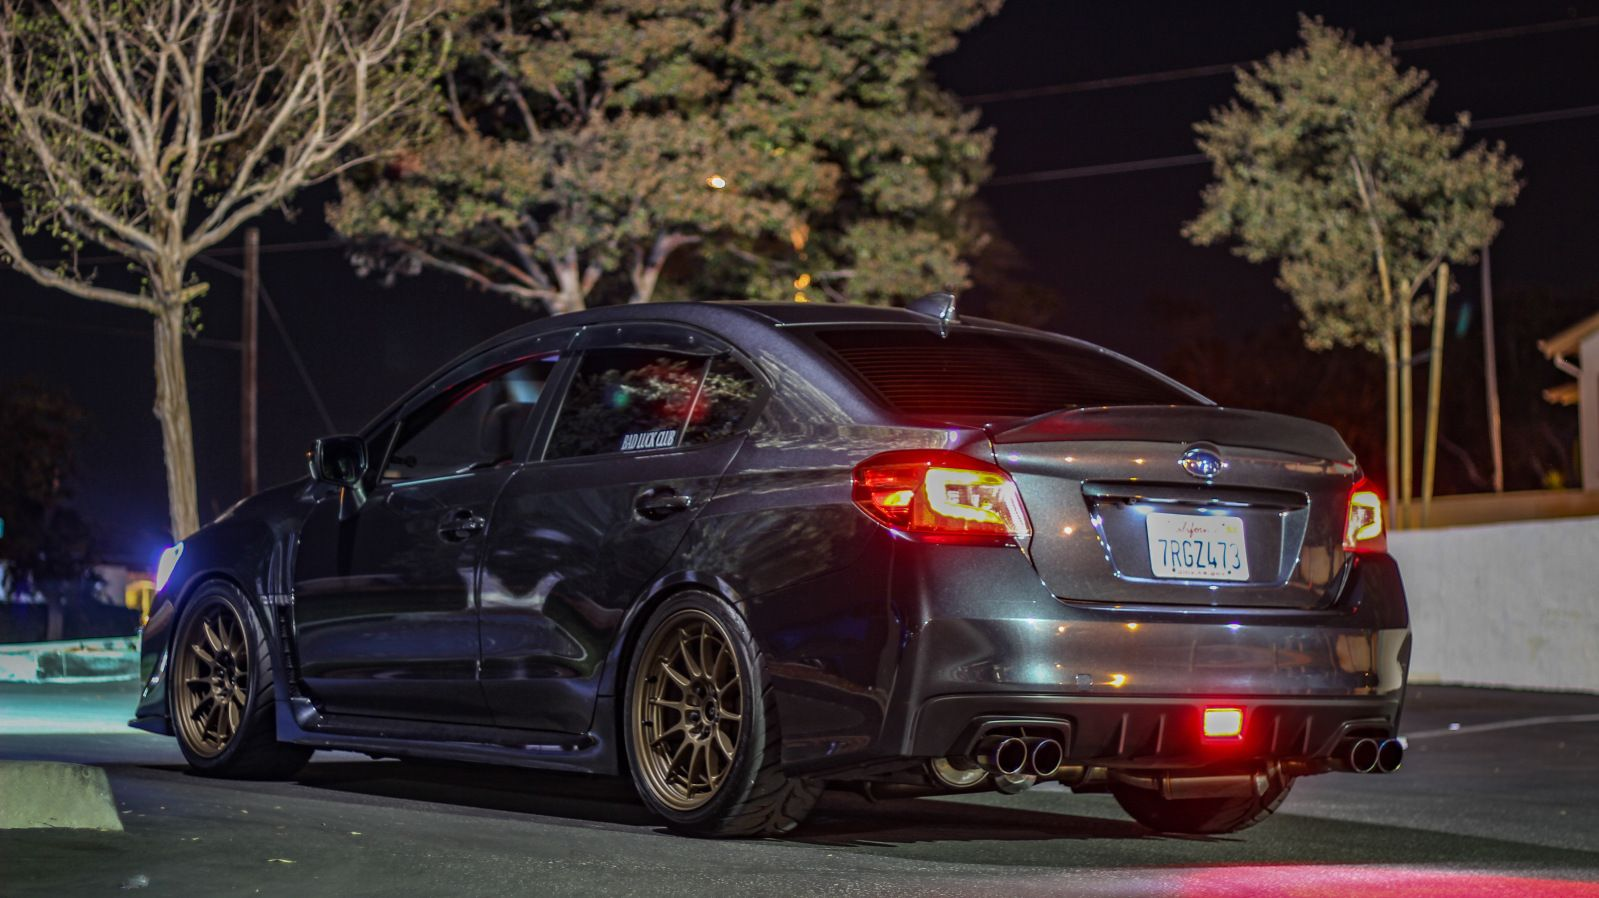 2015 WRX STi Aftermarket wheel and tire fitment Page 290 NASIOC